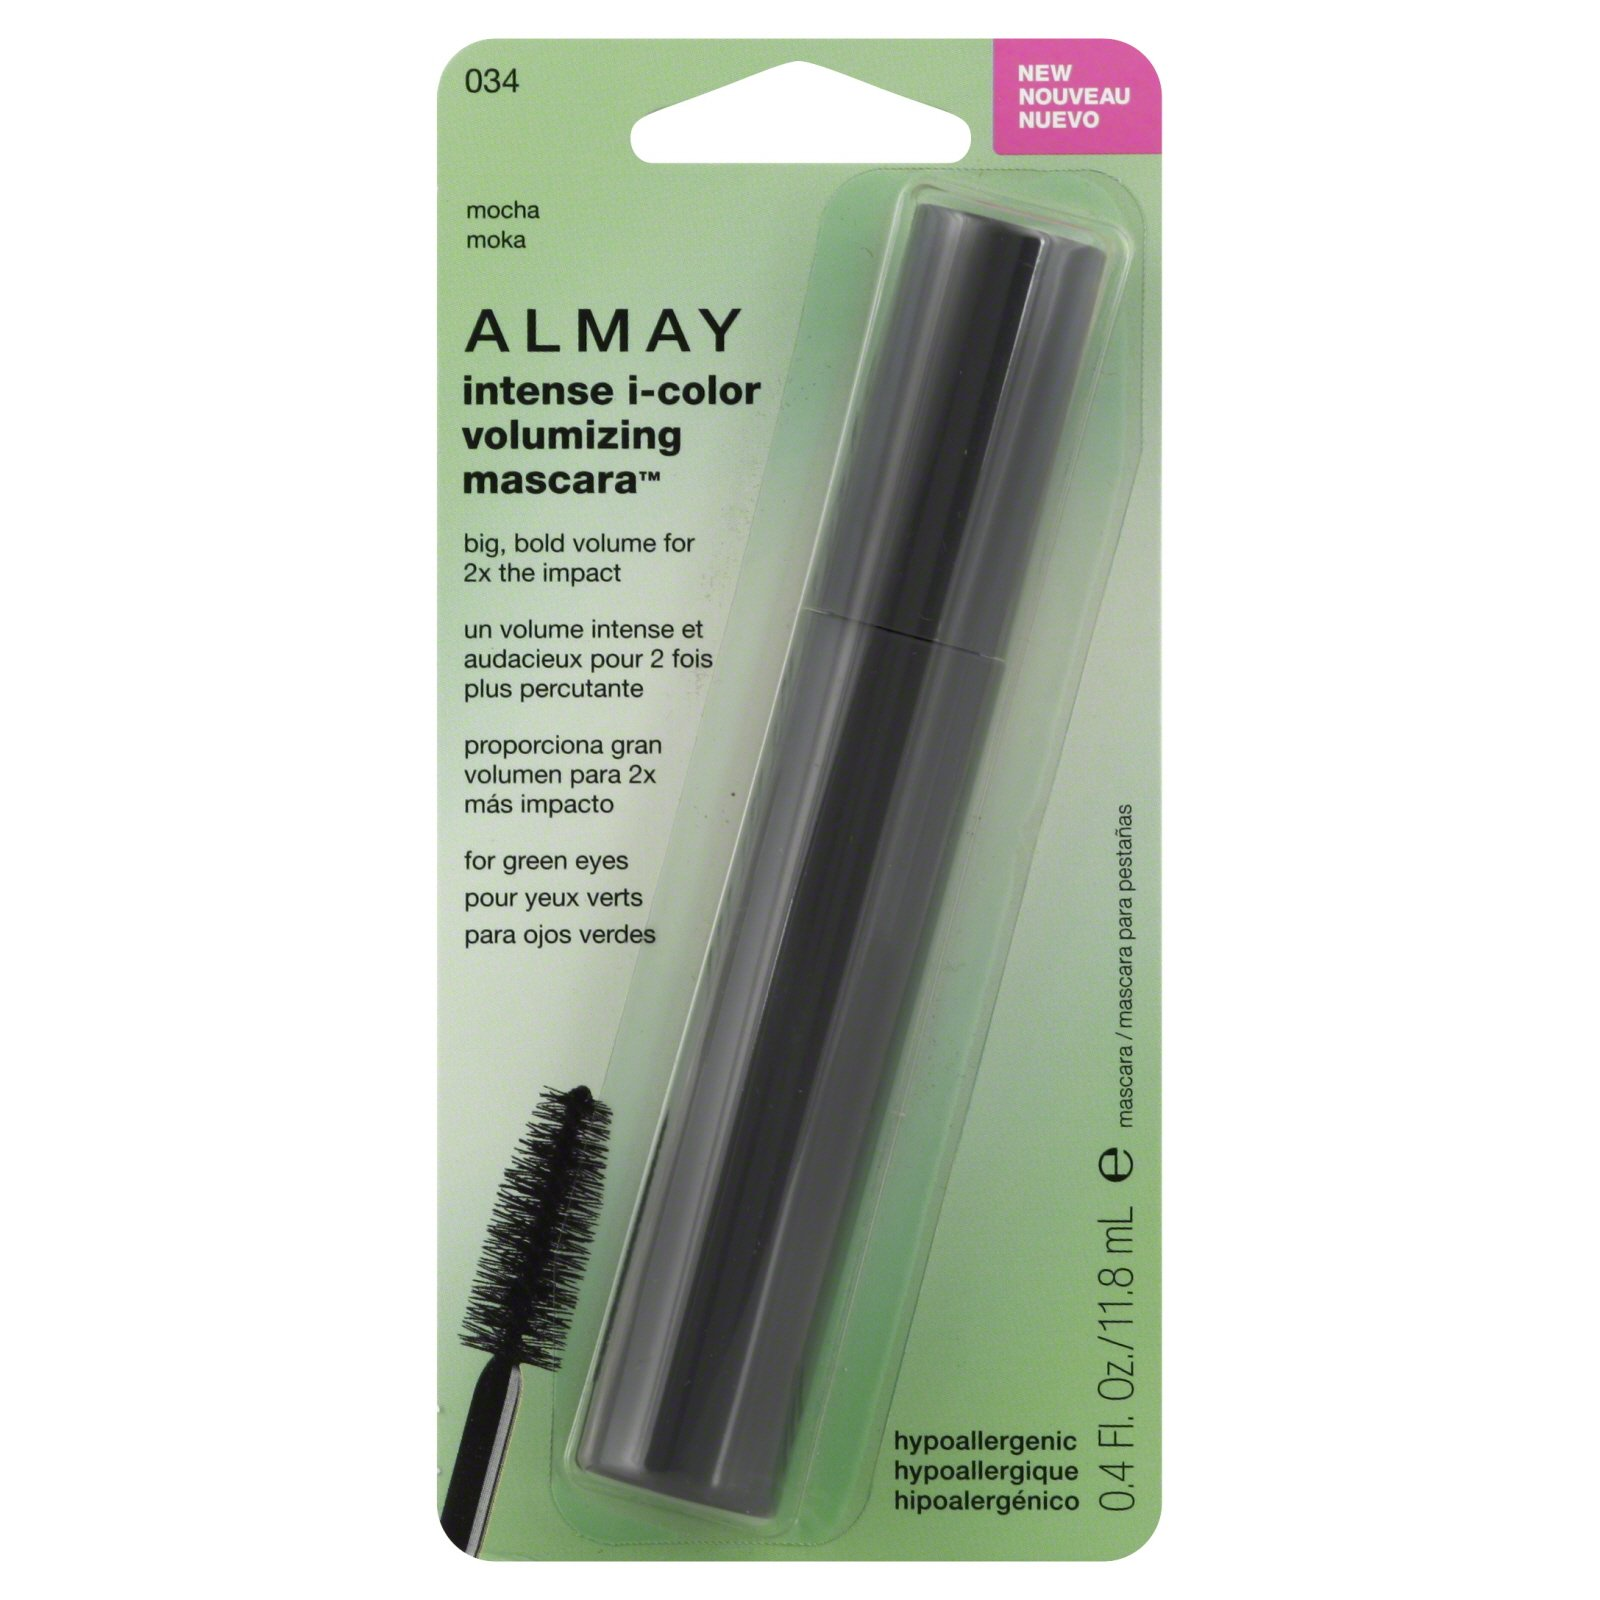 Almay Intense I-Color Volumizing Mascara For Green Eyes, Mocha [034] 0.4